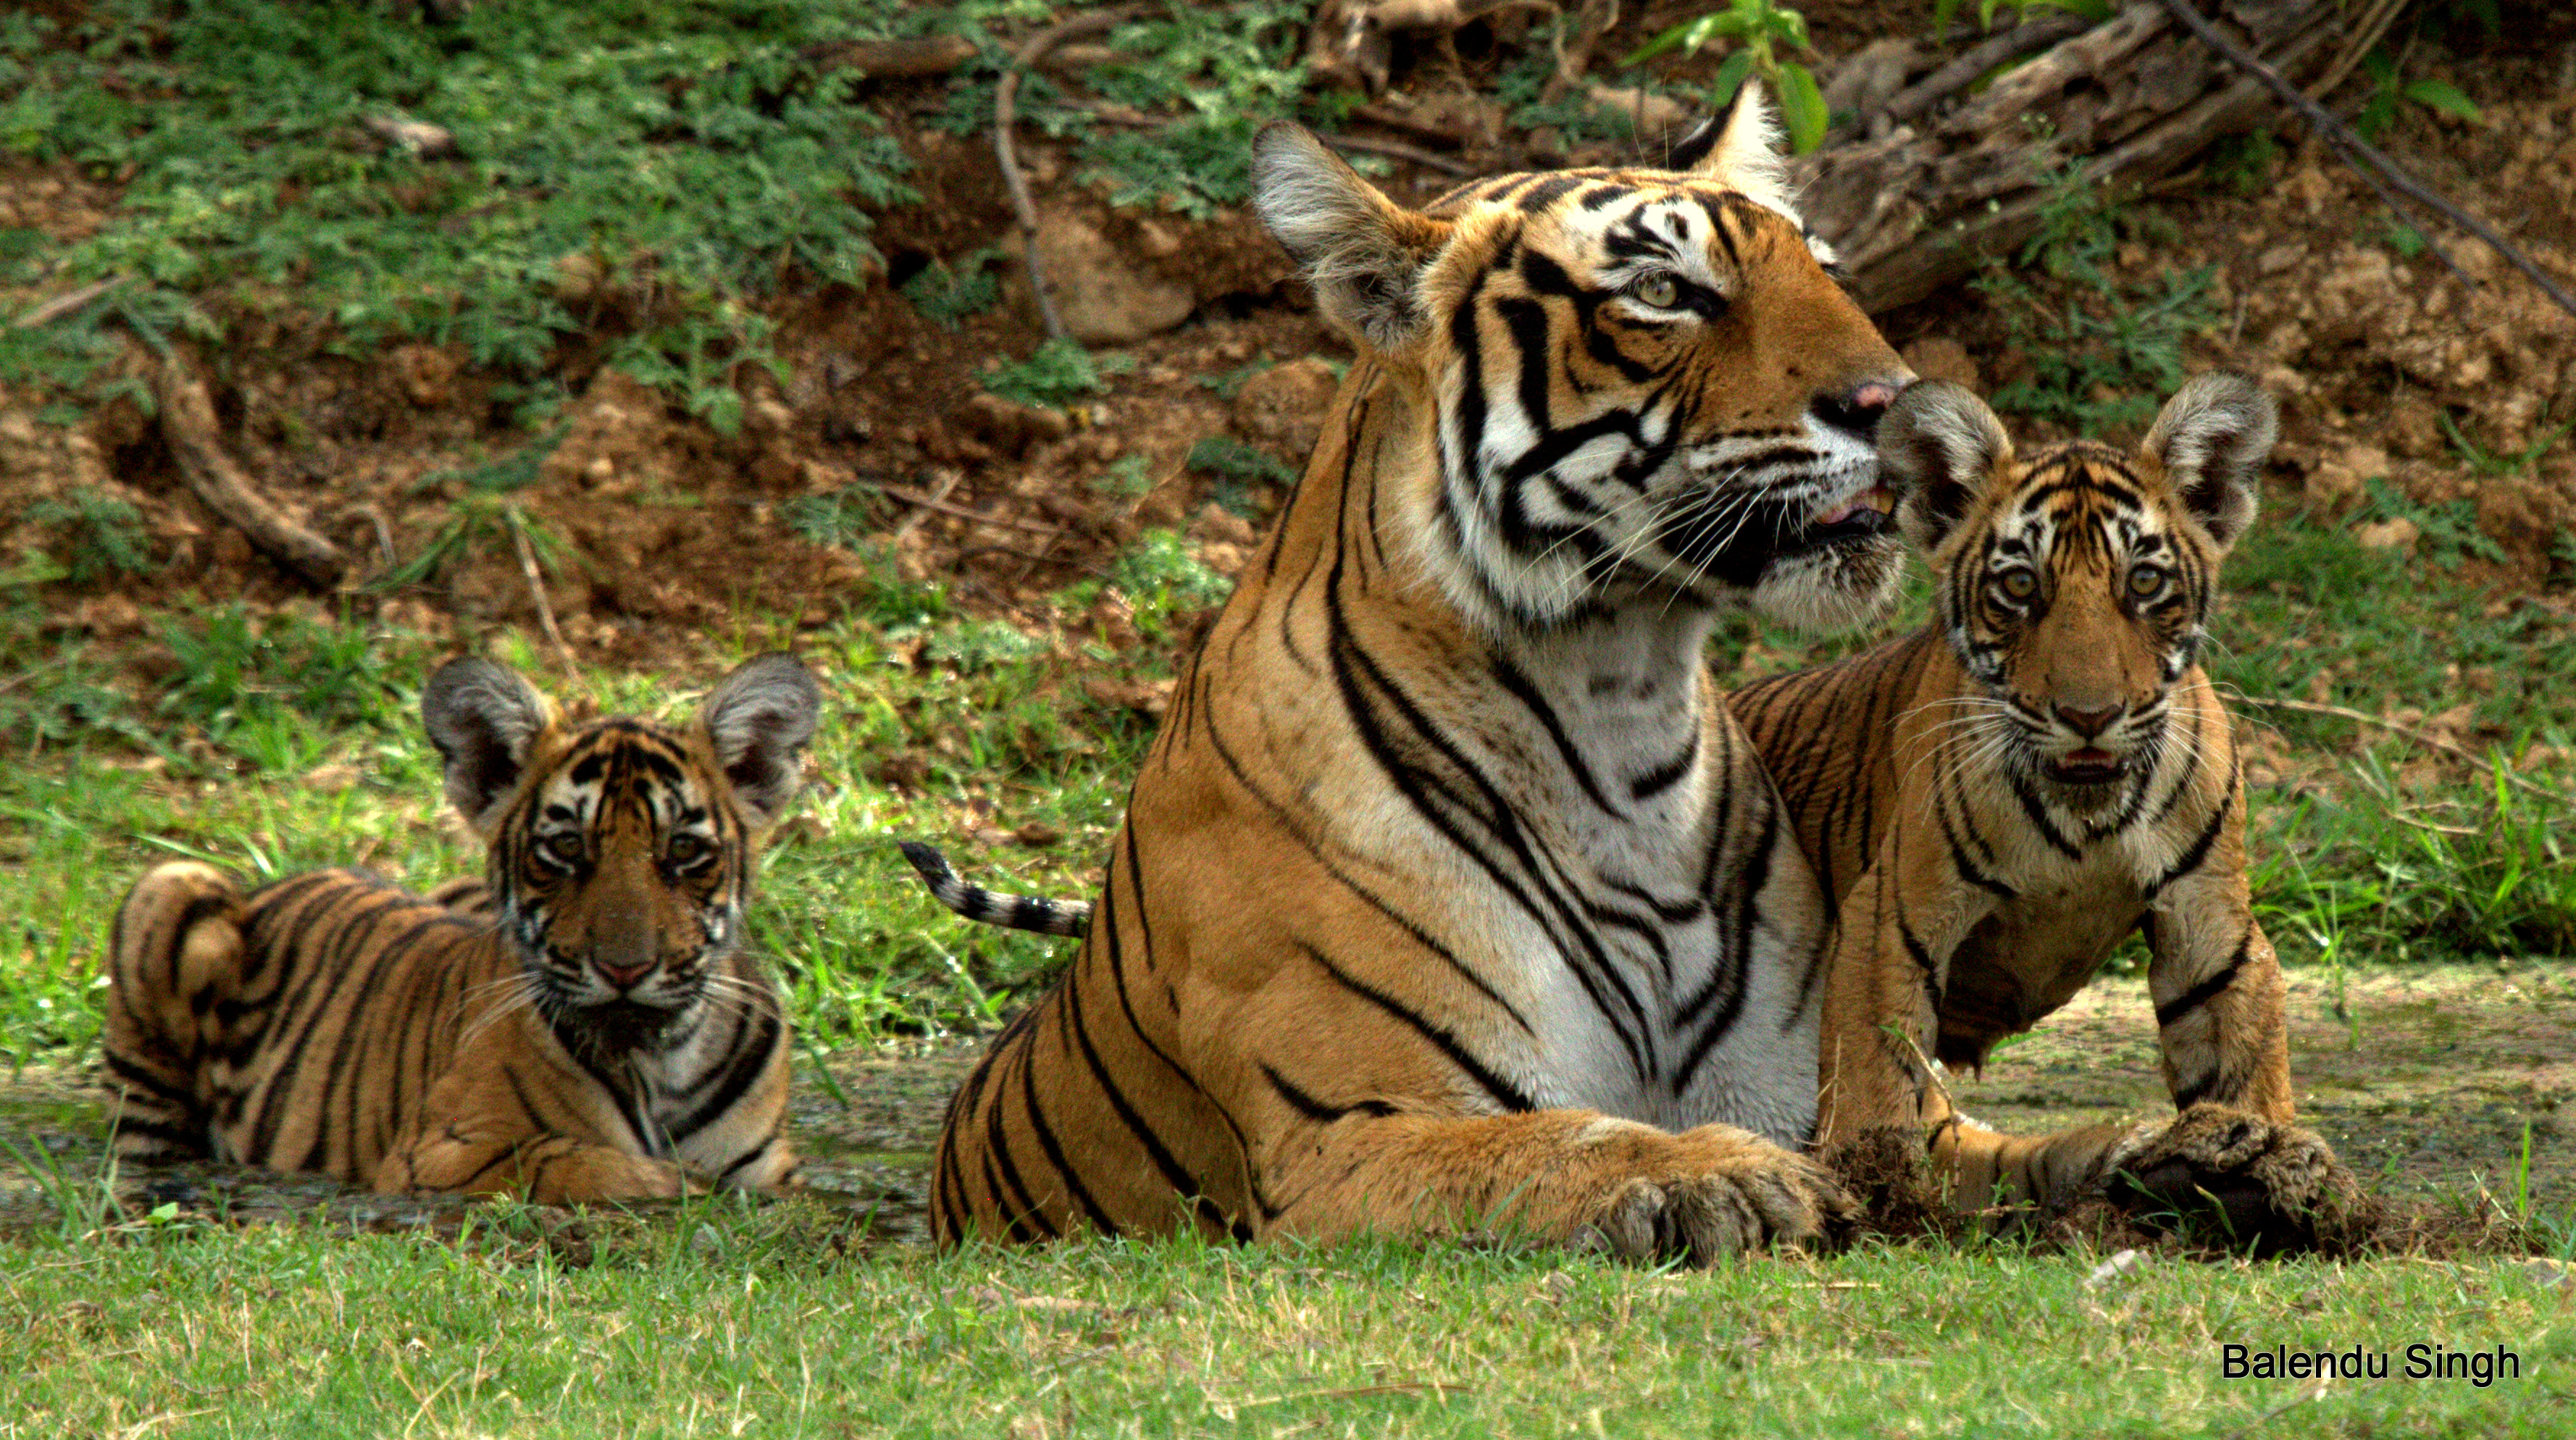 Tiger mother and cubs in Ranthambhore National Park